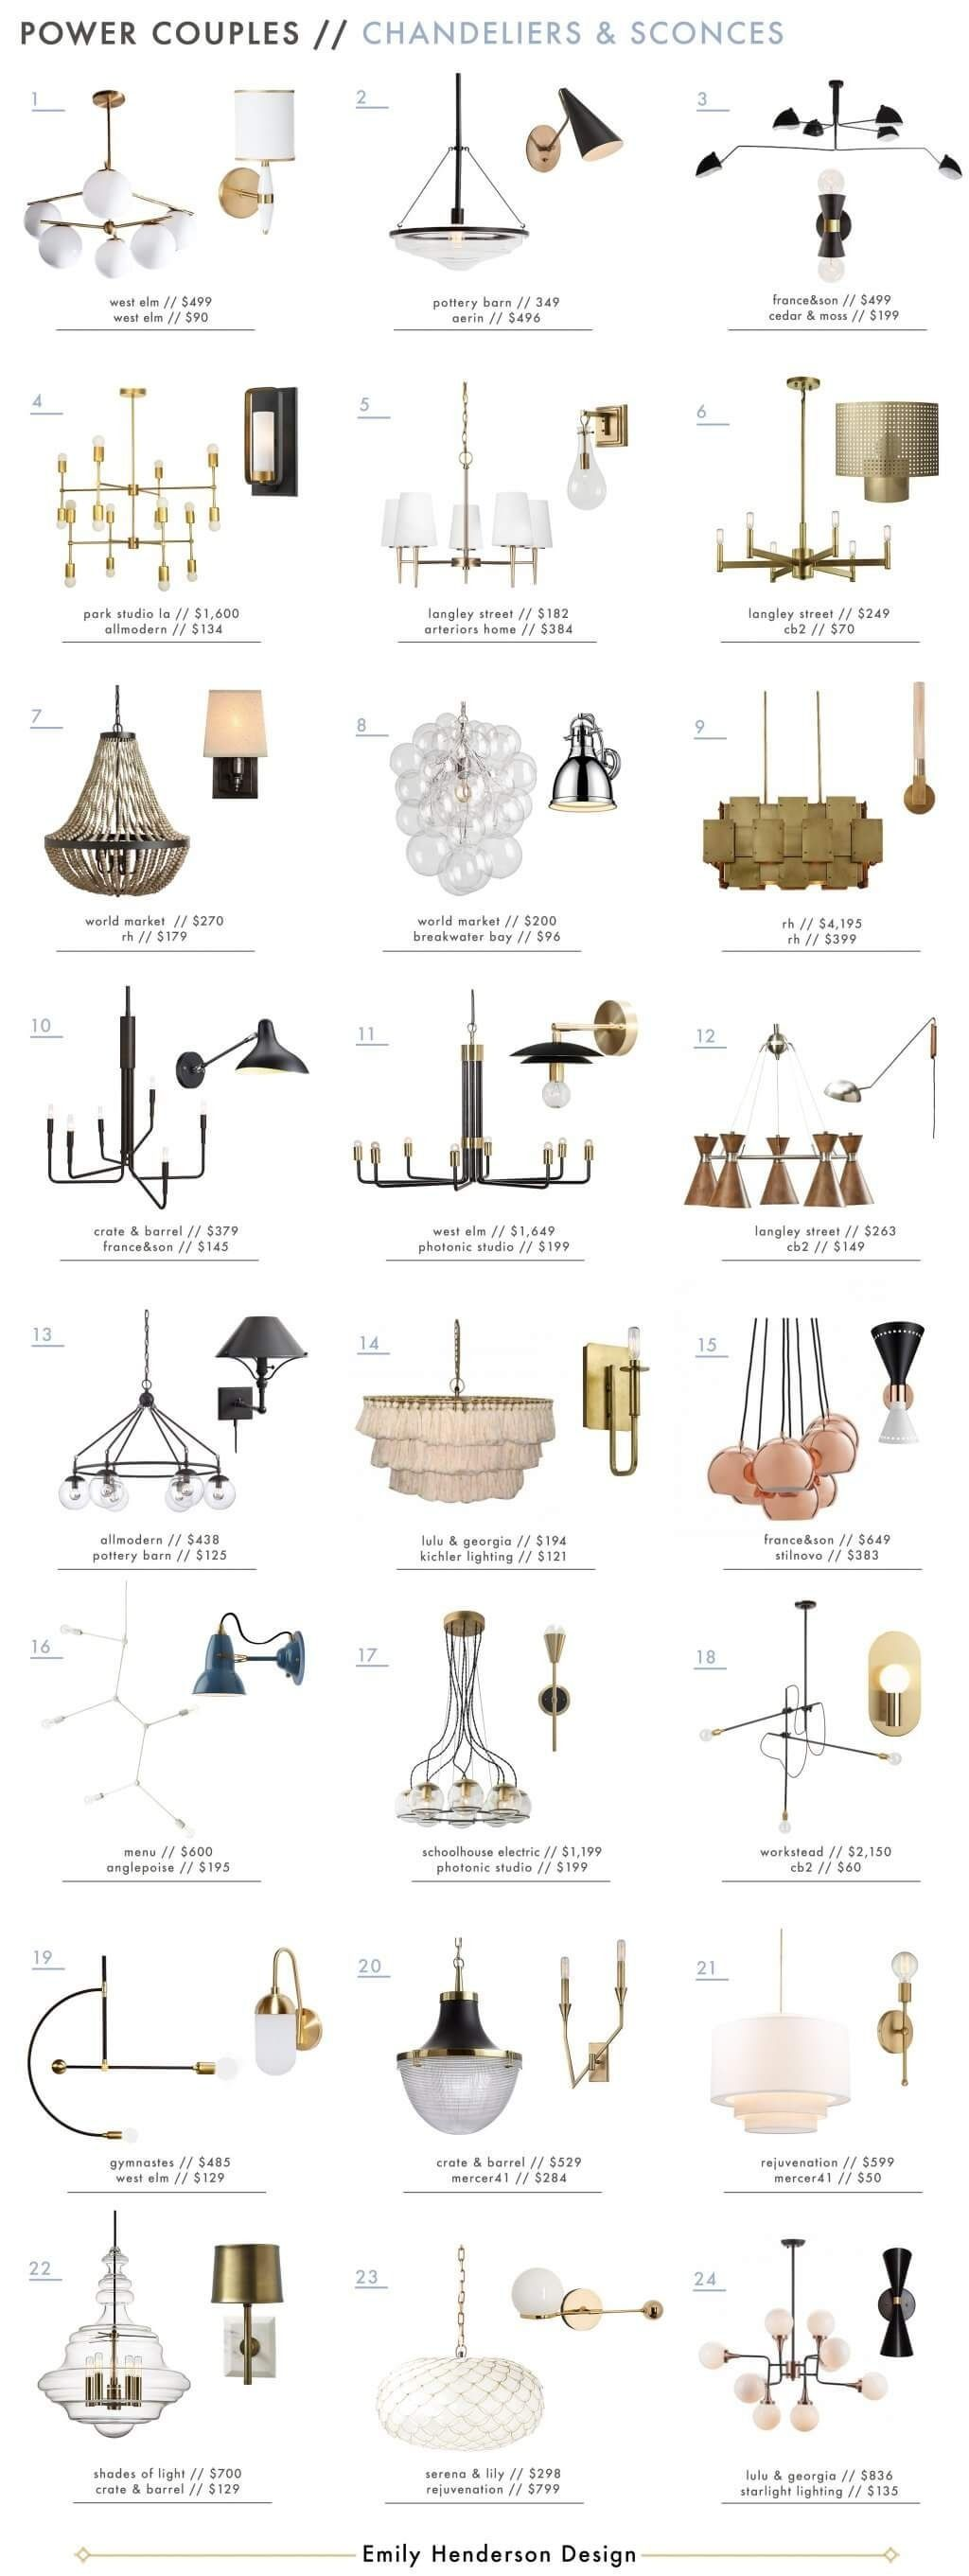 26 Interior Design Ideas With Wall Sconce: Power Couples: Chandeliers And Sconces